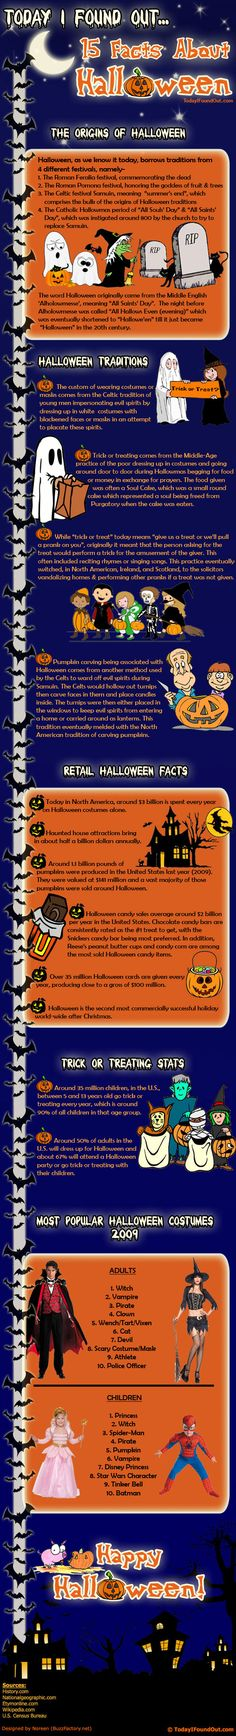 Halloween Infographic 15 Halloween Facts http://www.todayifoundout.com/index.php/2010/10/15-facts-about-halloween/#